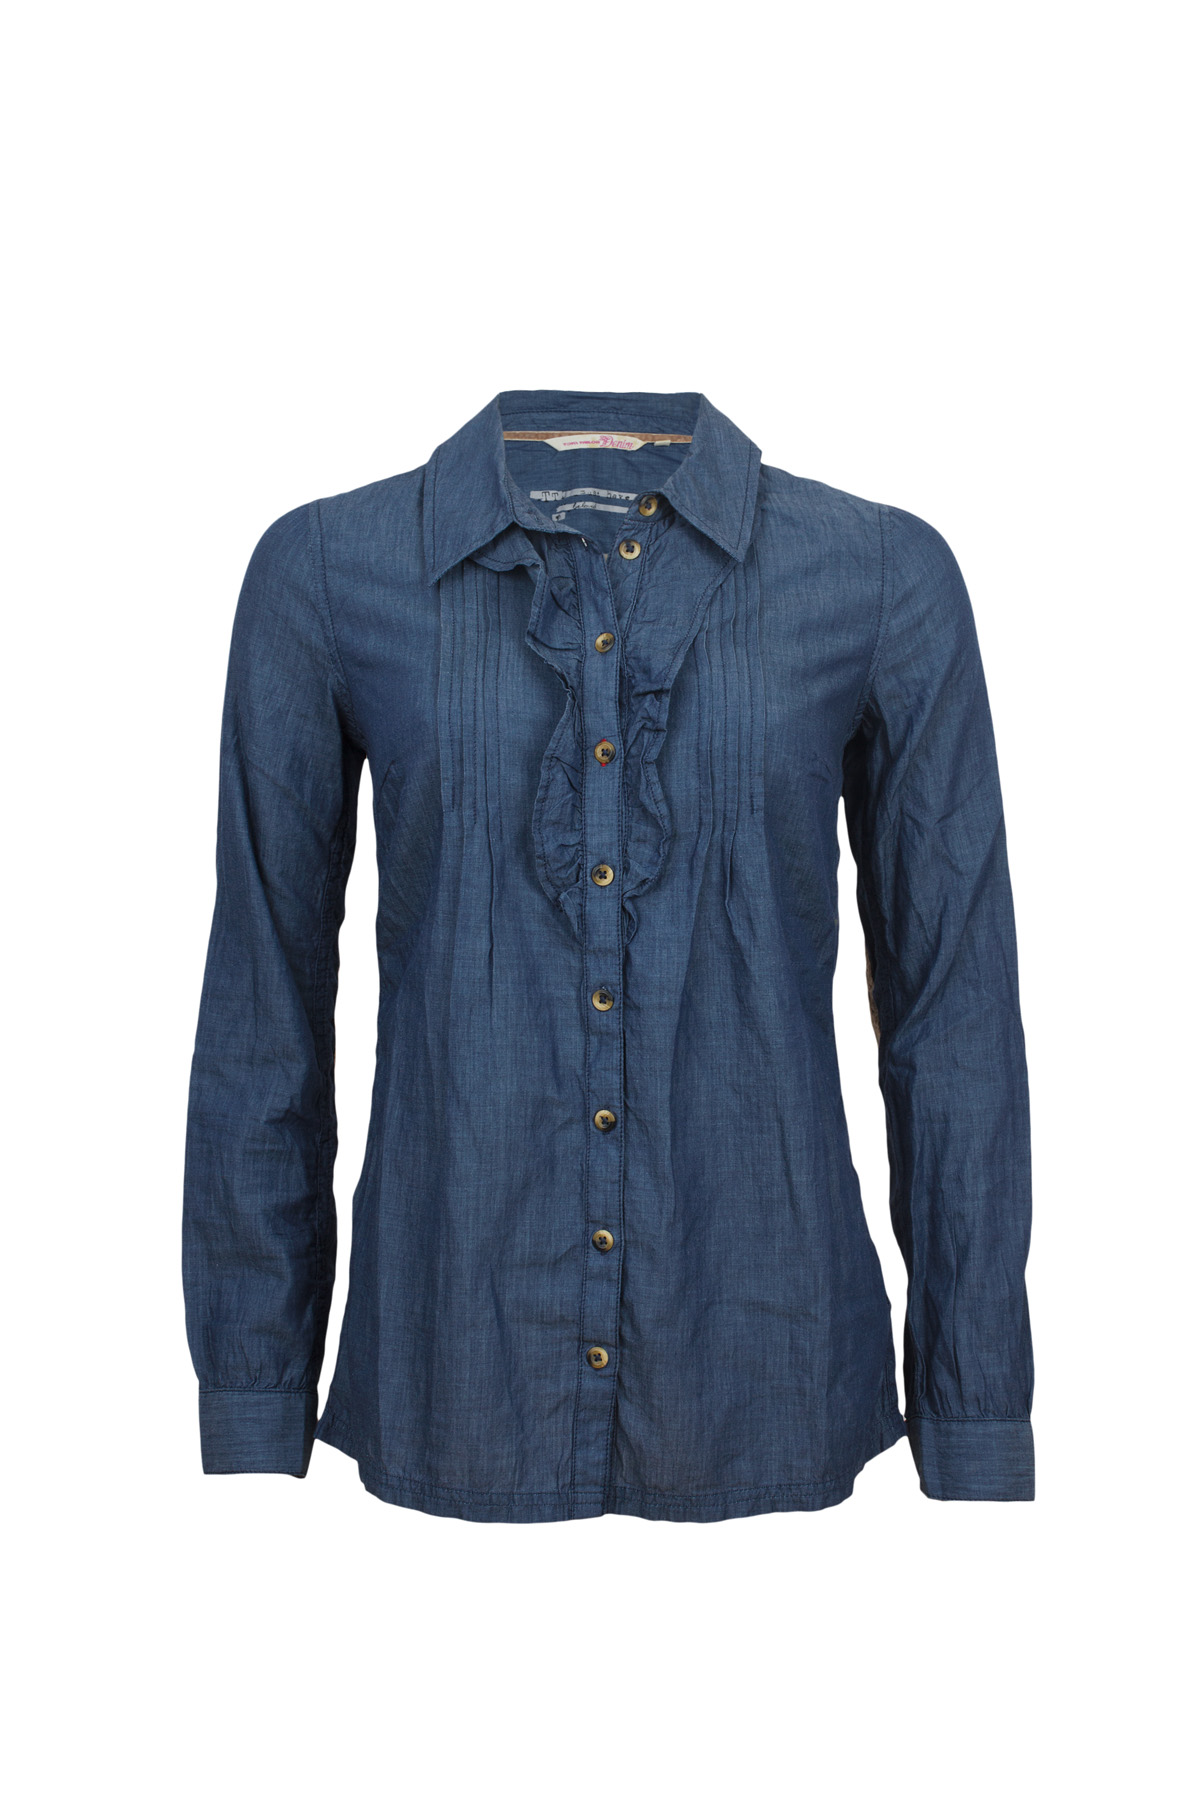 tom tailor damen jeans bluse chambray patches 2017157 ebay. Black Bedroom Furniture Sets. Home Design Ideas